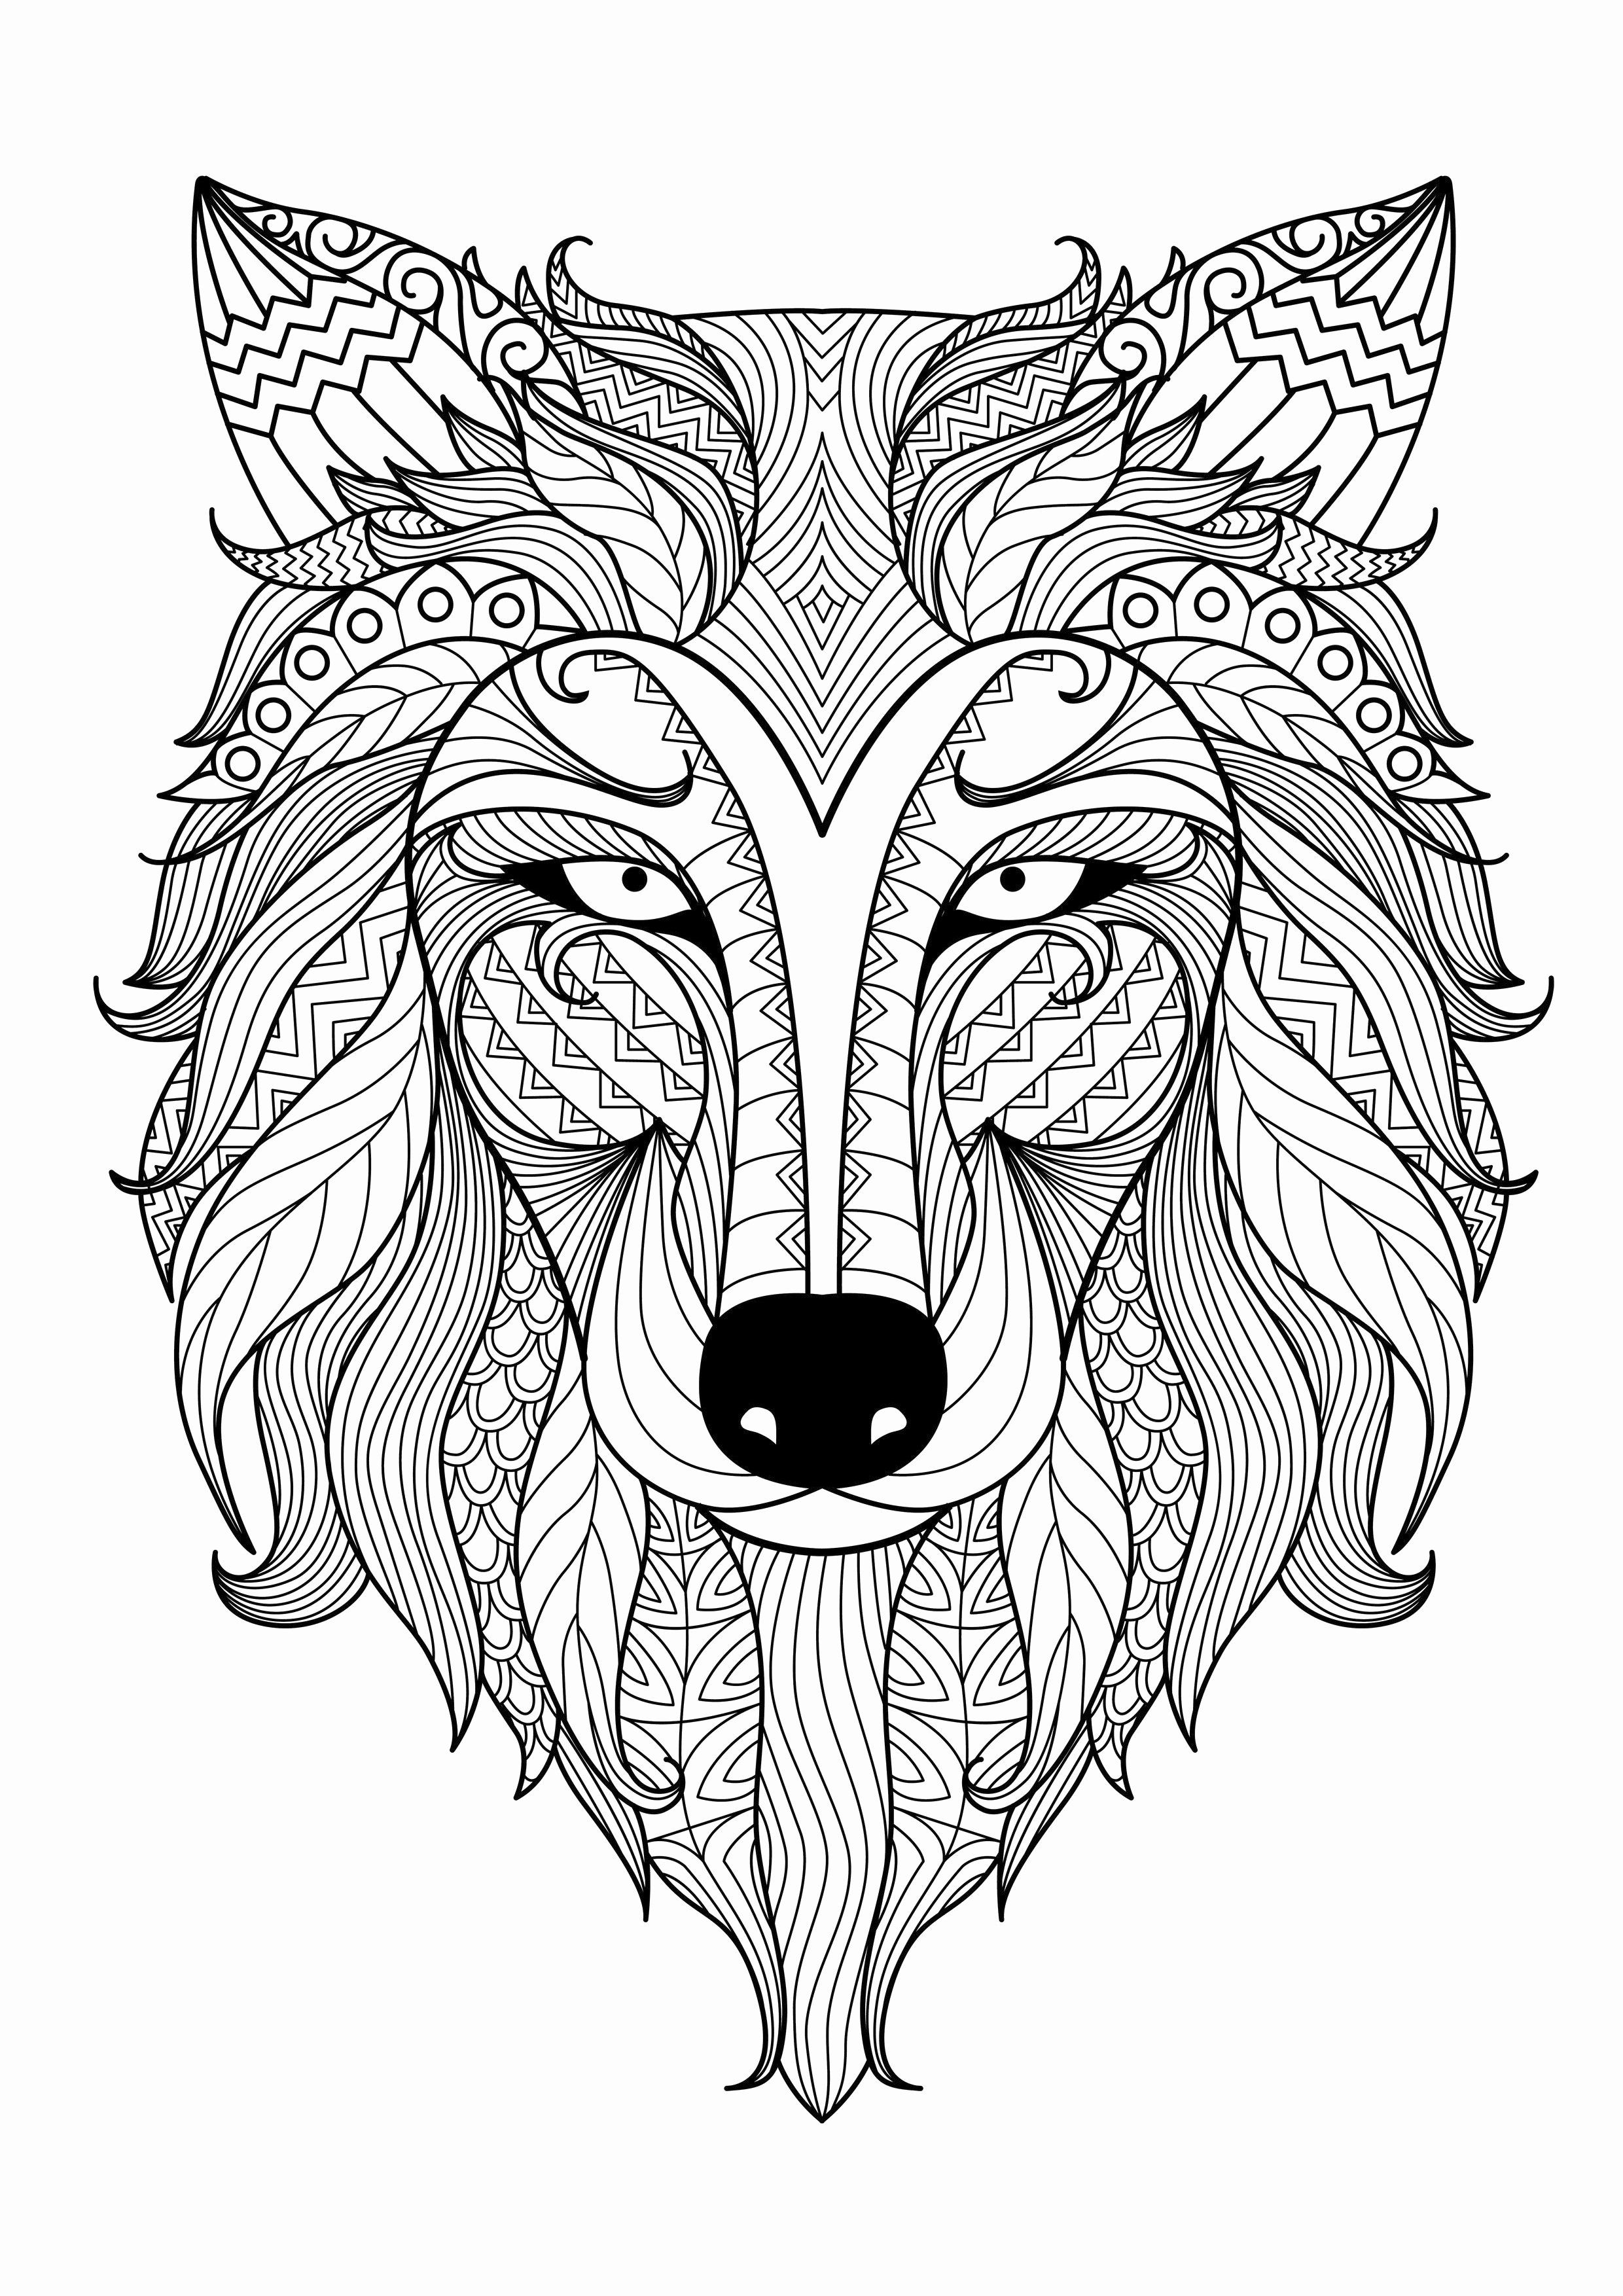 Coloring Pages Of A Tiger Luxury Printable Lion Coloring Pages Lobo Para Colorir Animais Para Colorir Desenhos Para Colorir